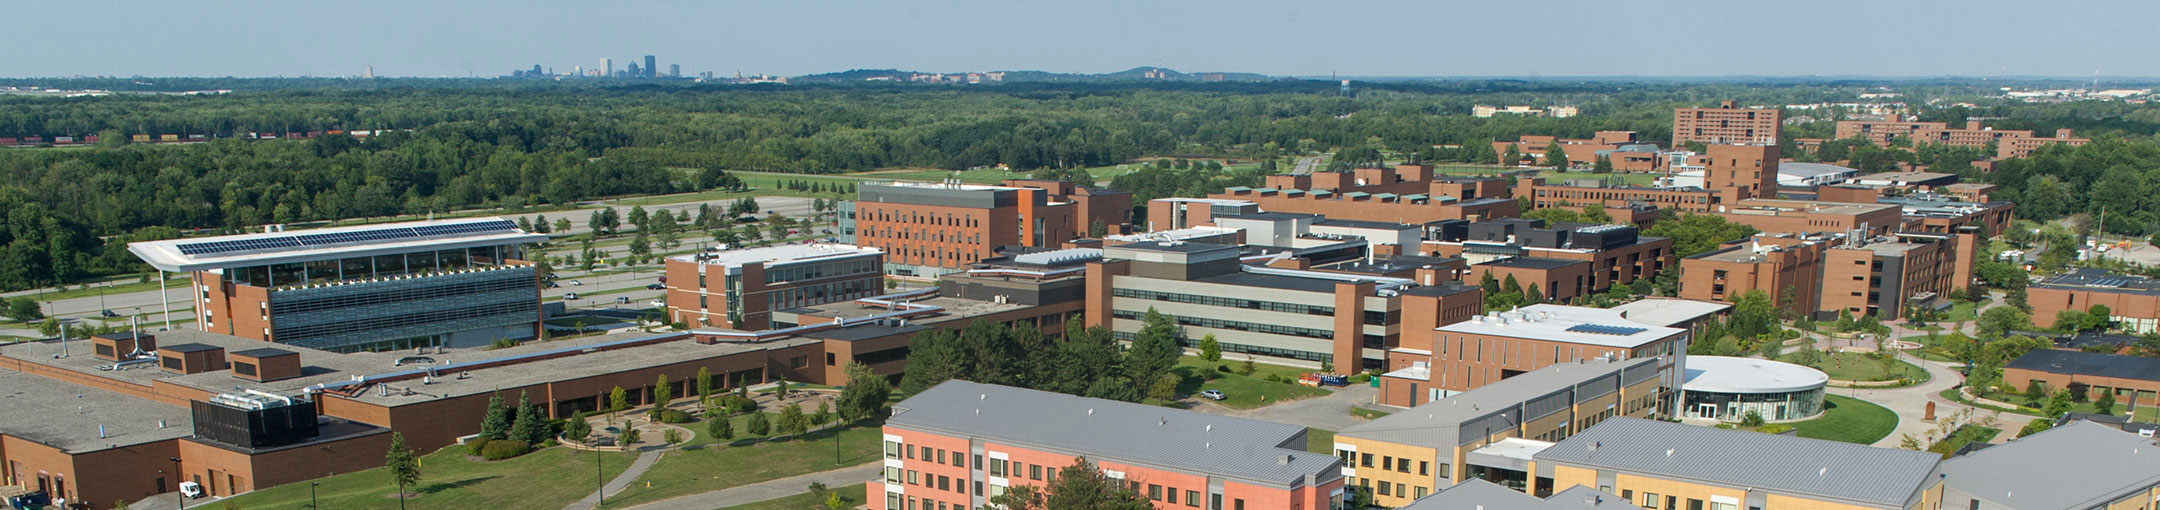 an aerial photo of RIT's campus